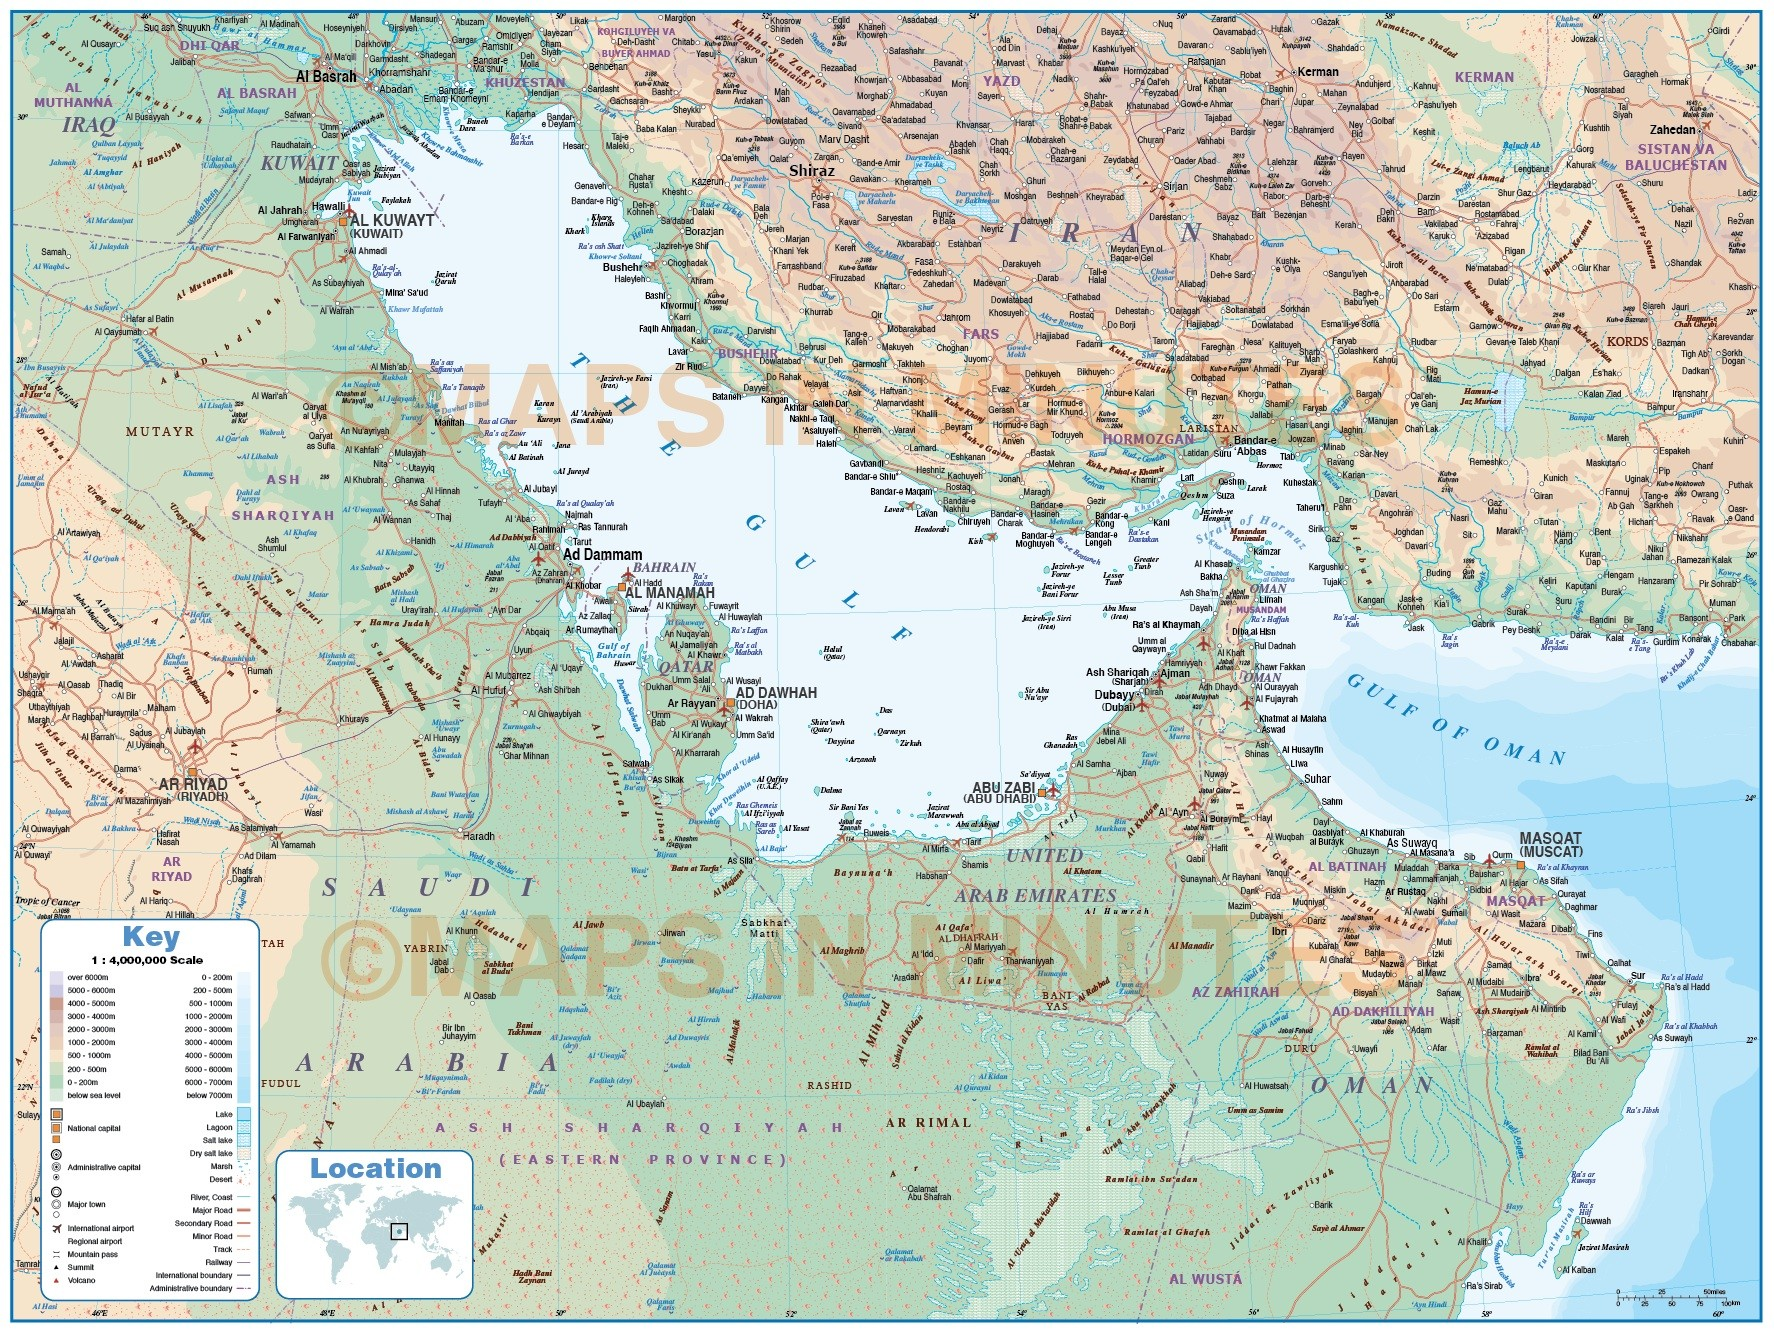 gulf political deluxe map with roads rail and land sea contours showing land